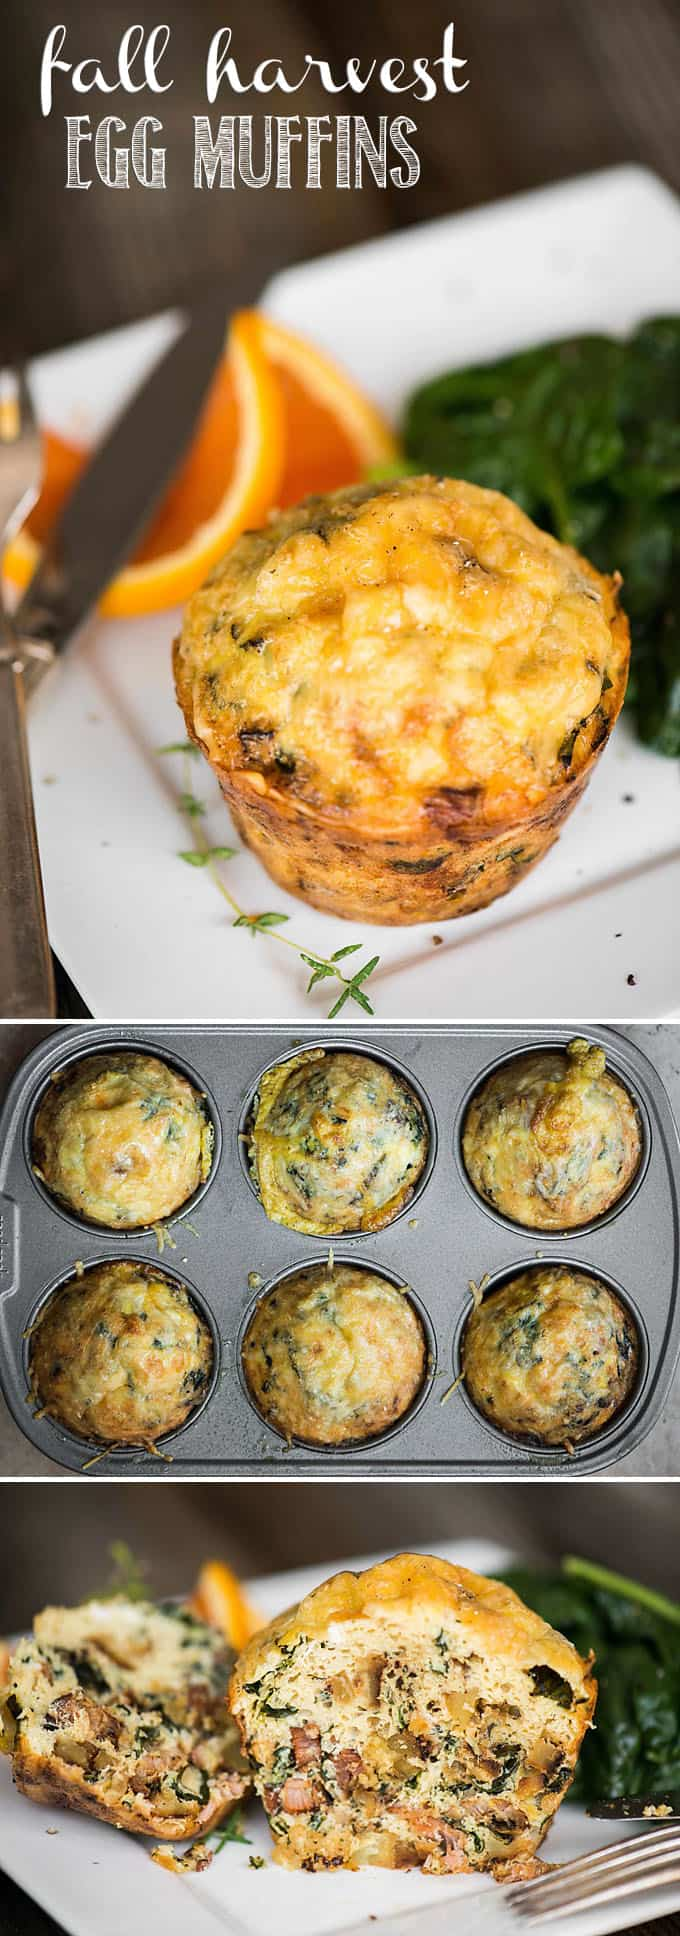 Fall Harvest Egg Muffins, filled with sweet potatoes, greens, and bacon, make for an easy make ahead healthy breakfast option.